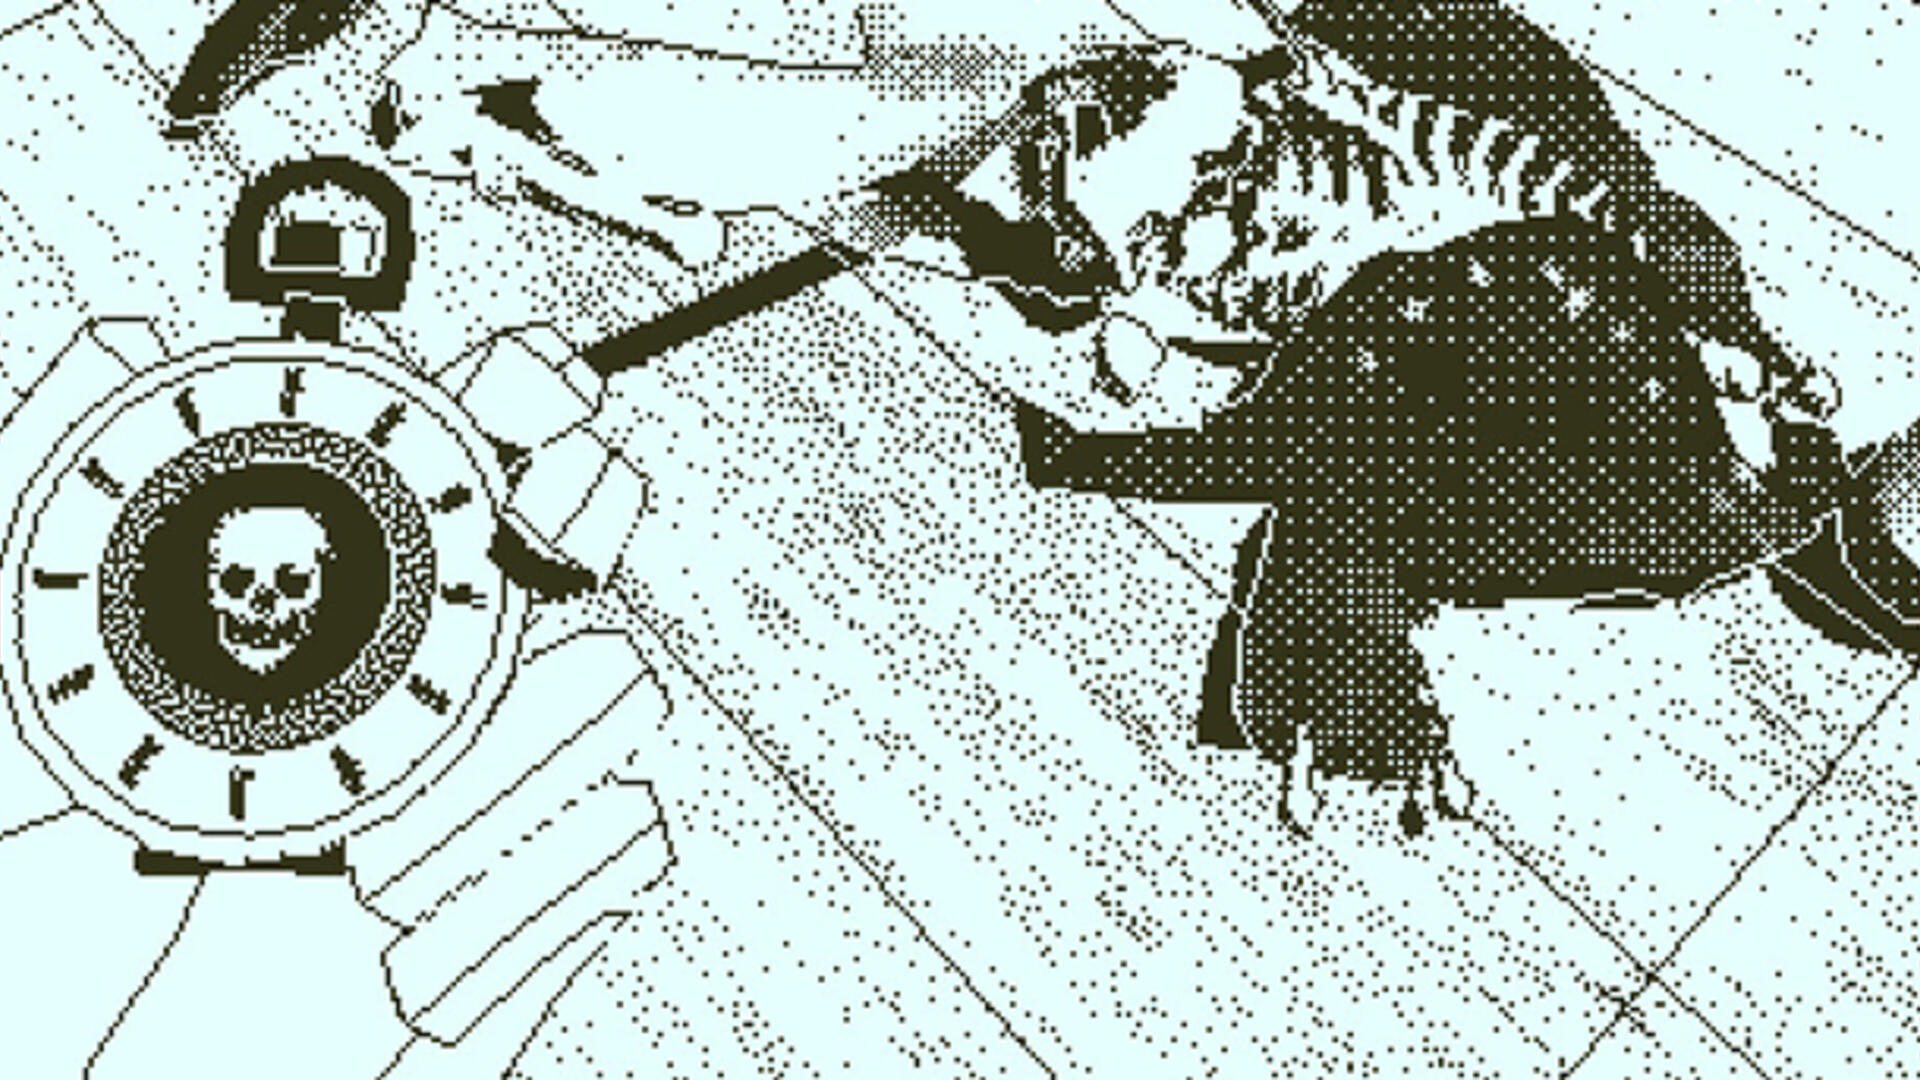 Return of the Obra Dinn's Mysteries Are So Deep That You Need an Actual Pen and Paper to Solve Them